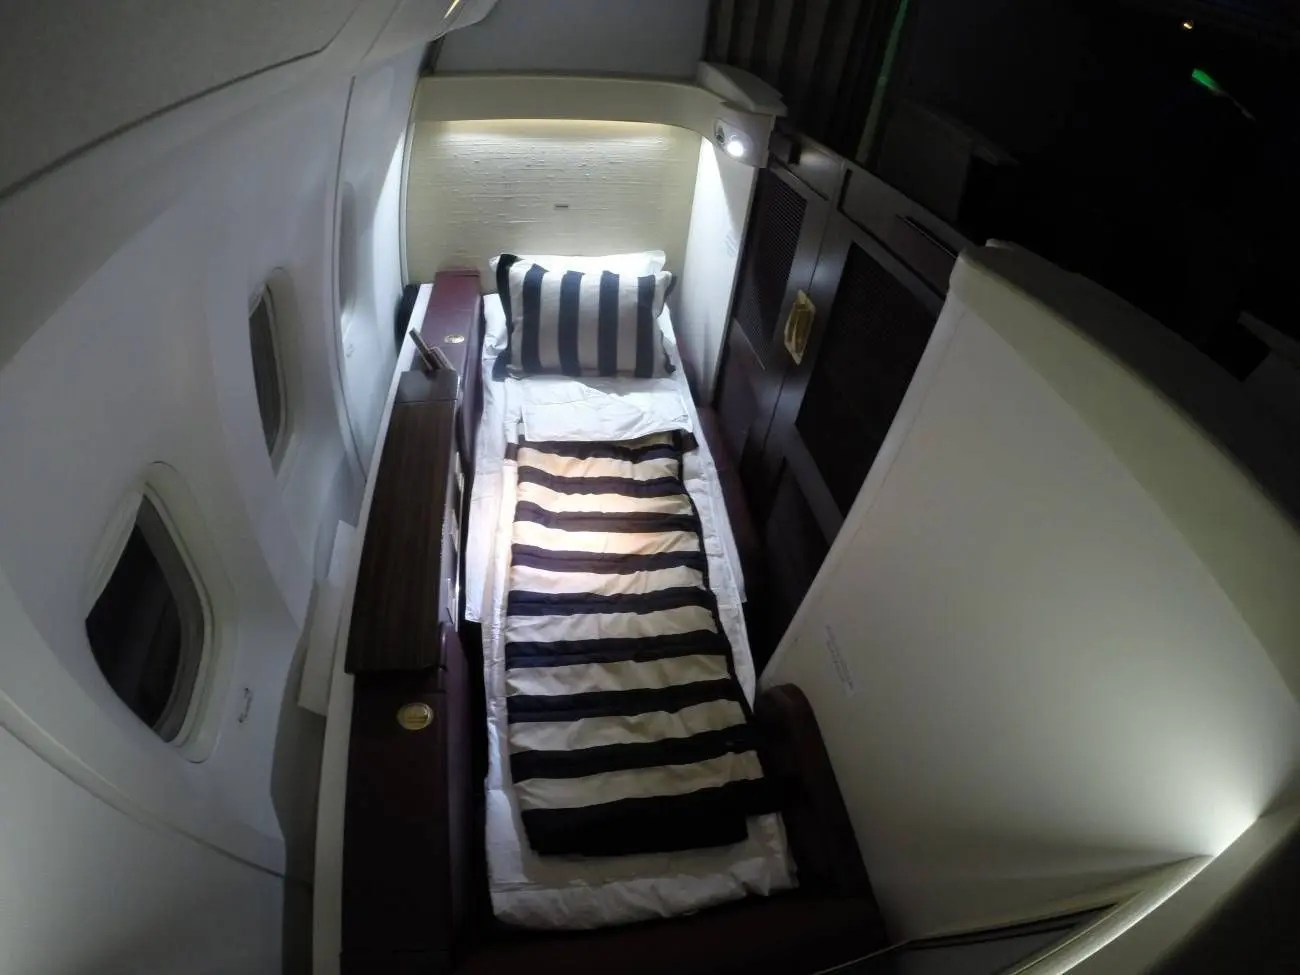 Jet-Airways-B777-First-Class-Etihad-Passageiro-de-Primeira-44-1300x975